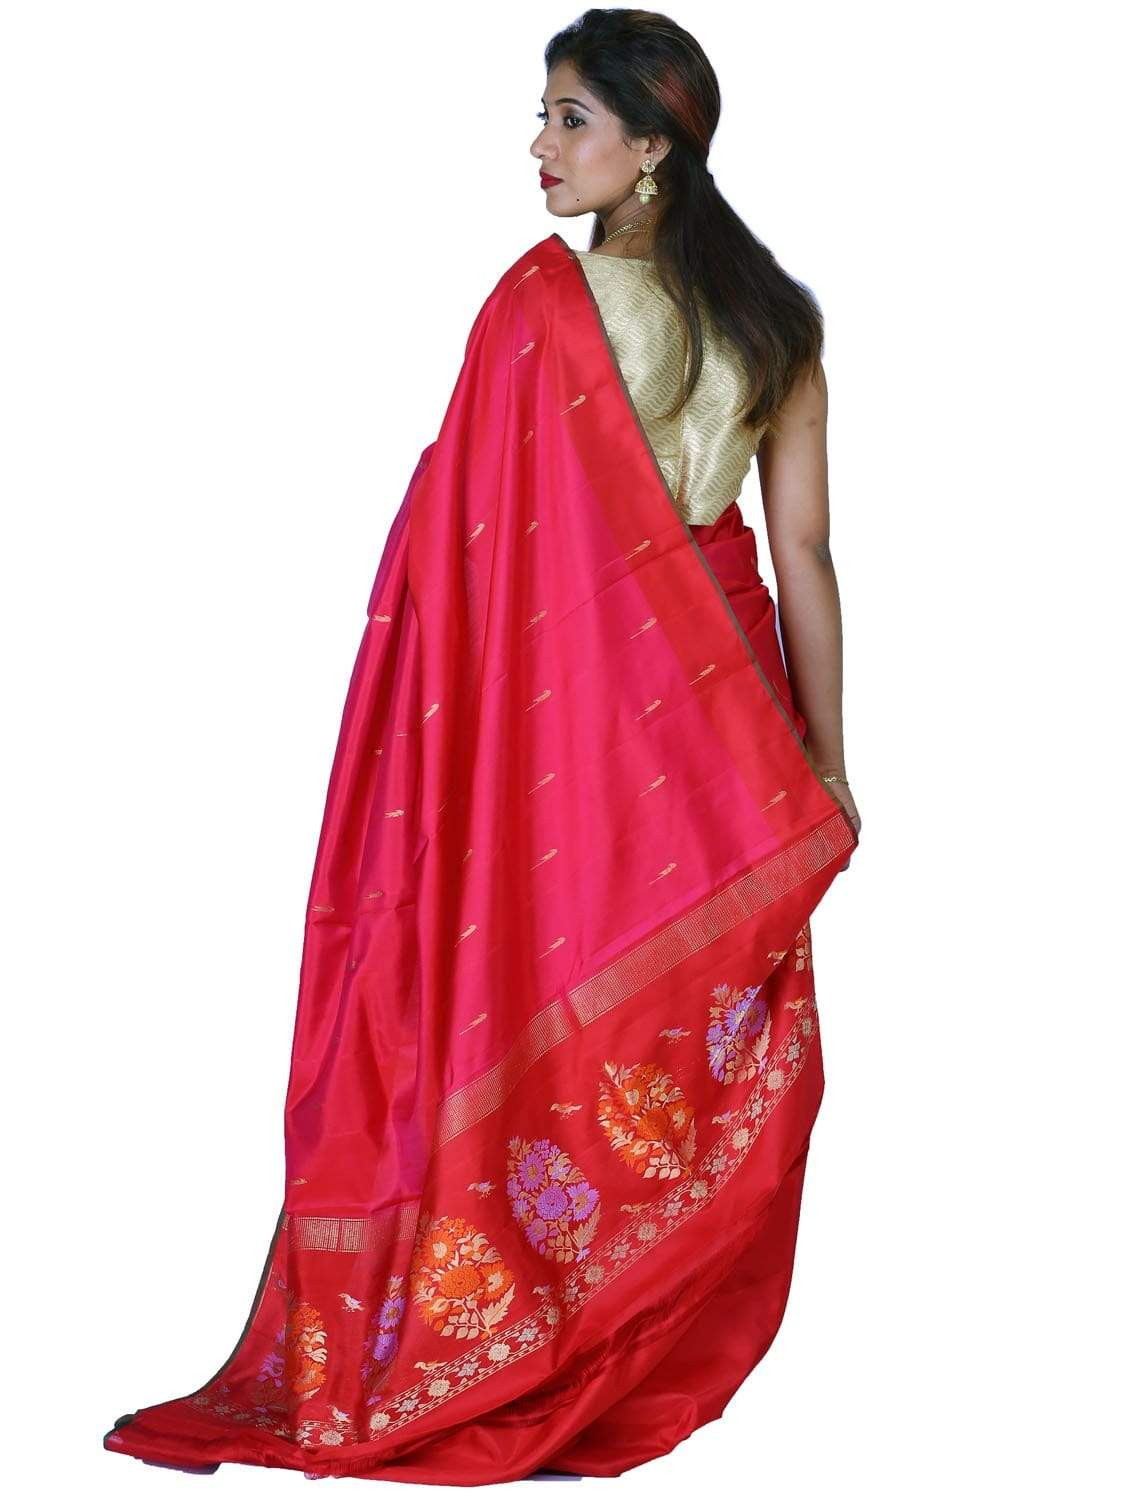 Pink and Red Silk Handloom Saree with One Side Border and Pallu Design o0269